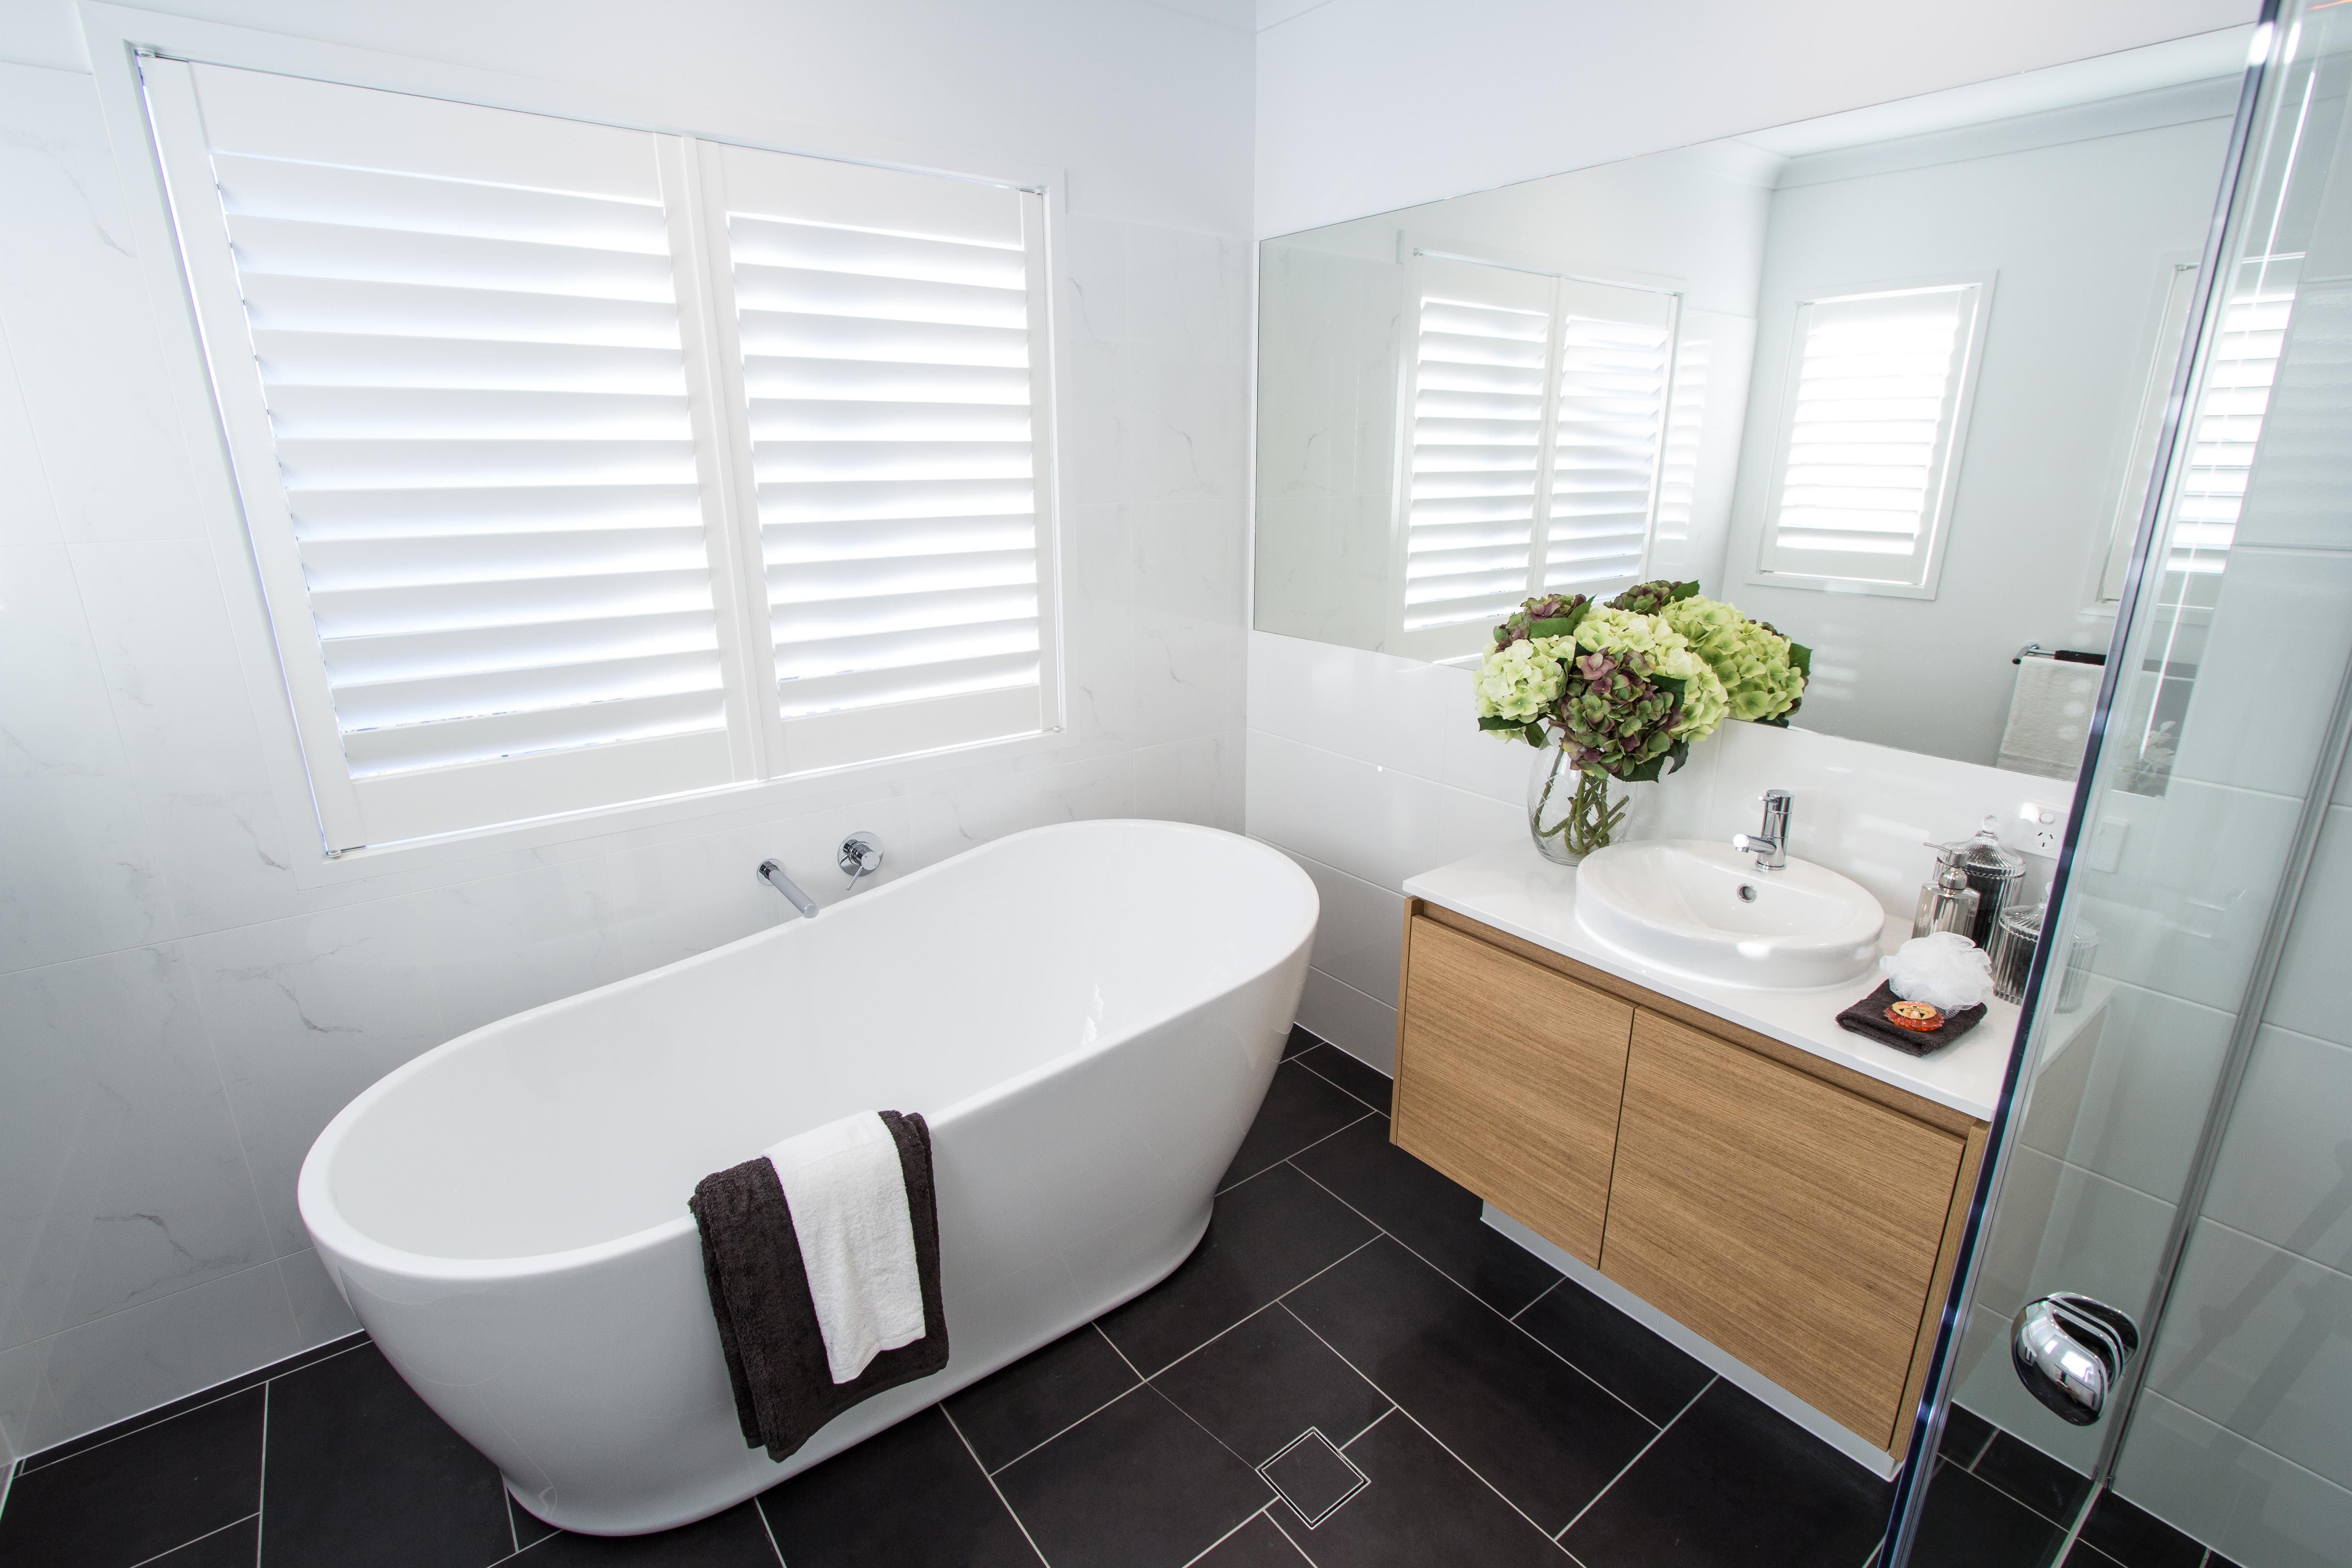 Inspired bathroom blog by diamond interiors vanity basin vanity bench - The Charcoal Floor Tiles In The Main Bathroom Have Been Laid In An Interesting Herringbone Pattern Making The White Freestanding Bath And Vanity Pop